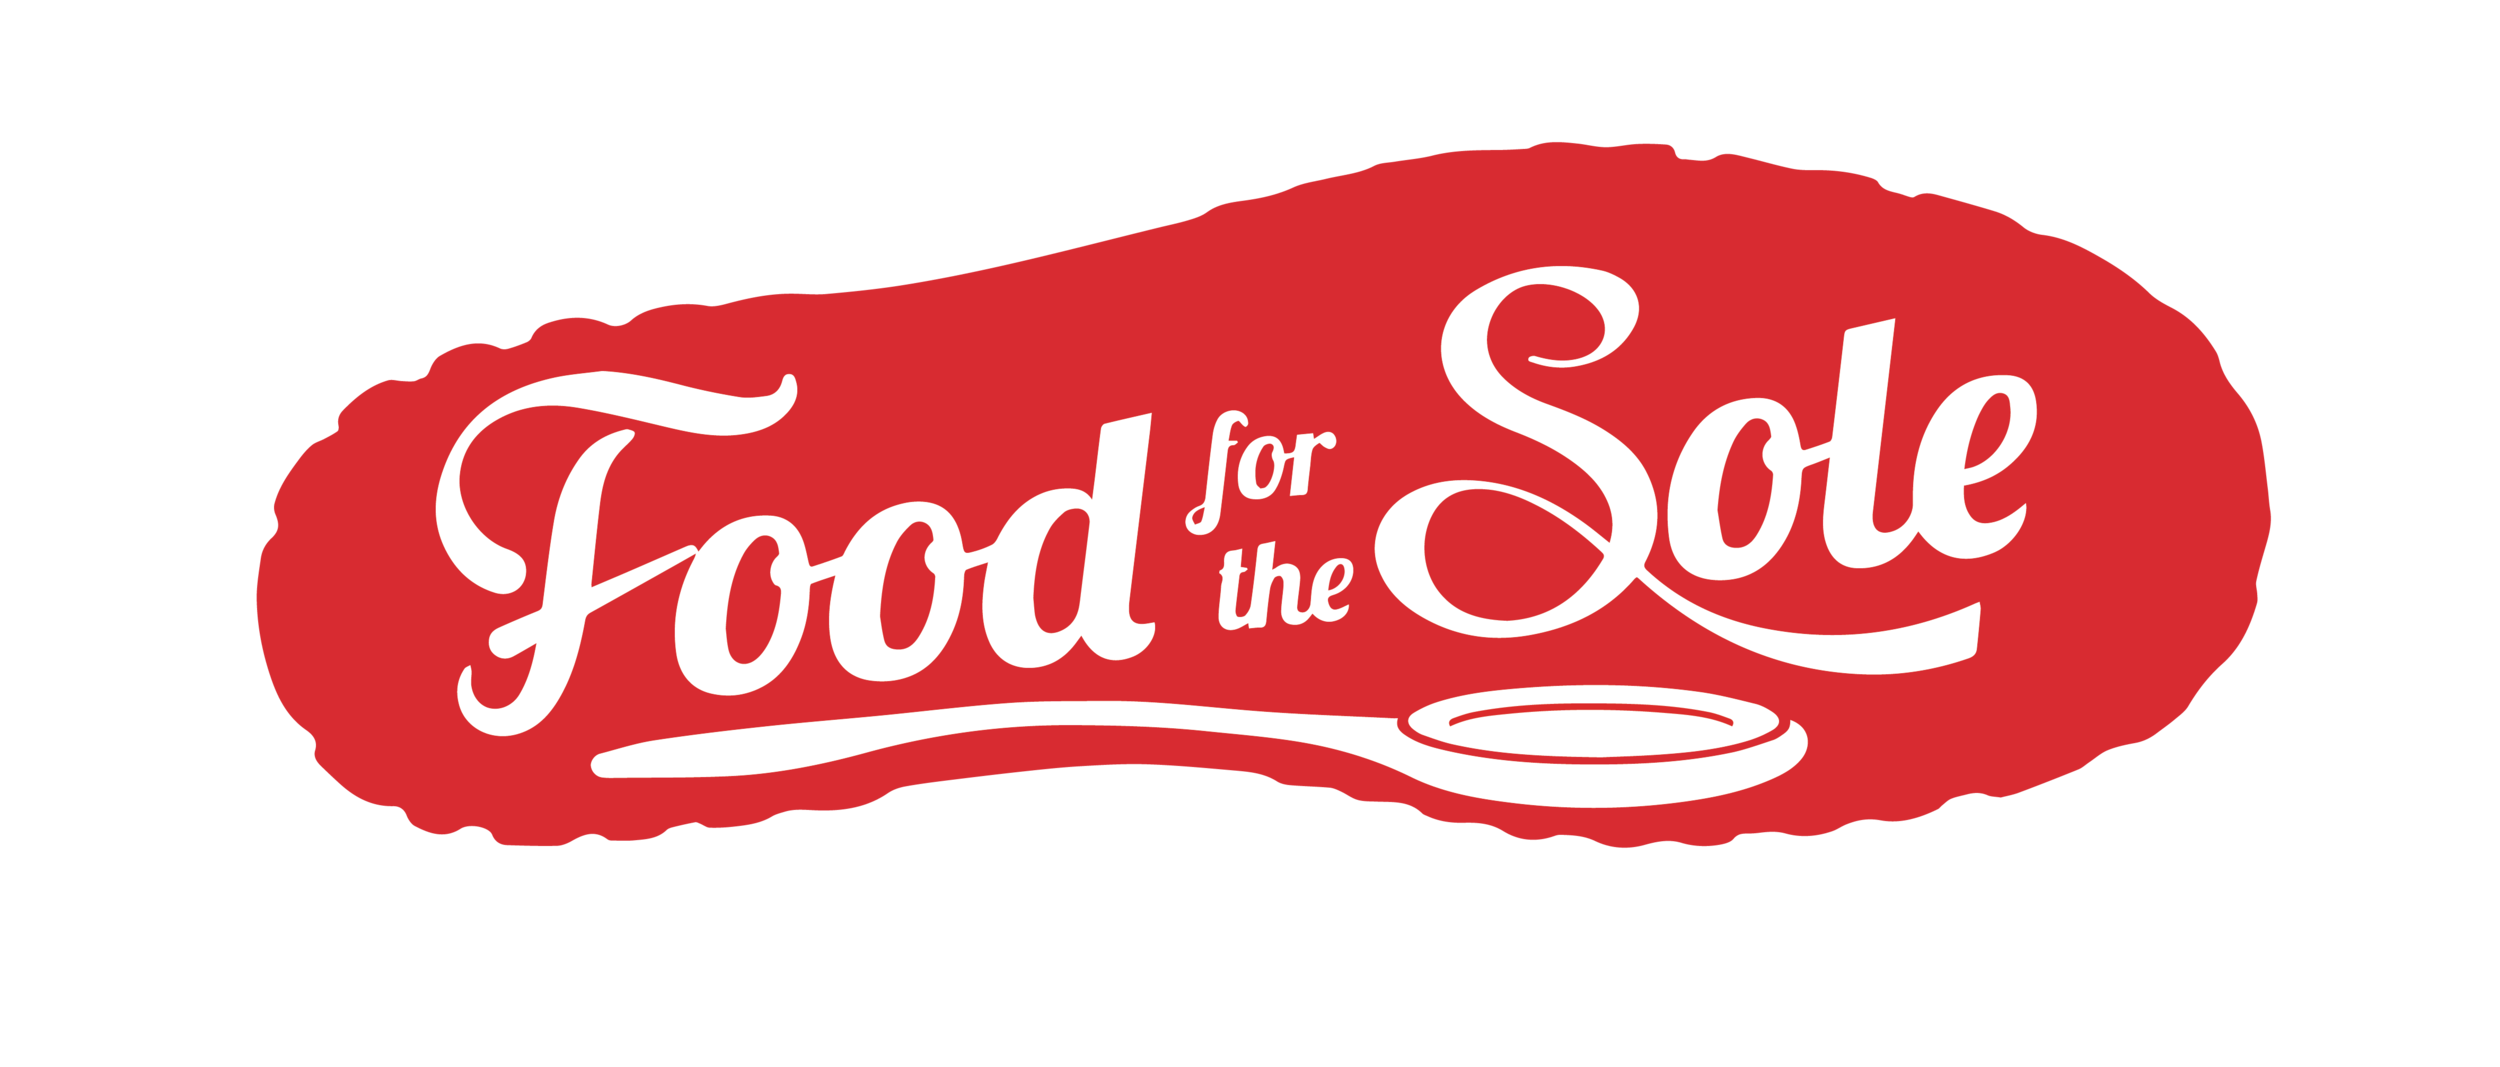 Food for the Sole